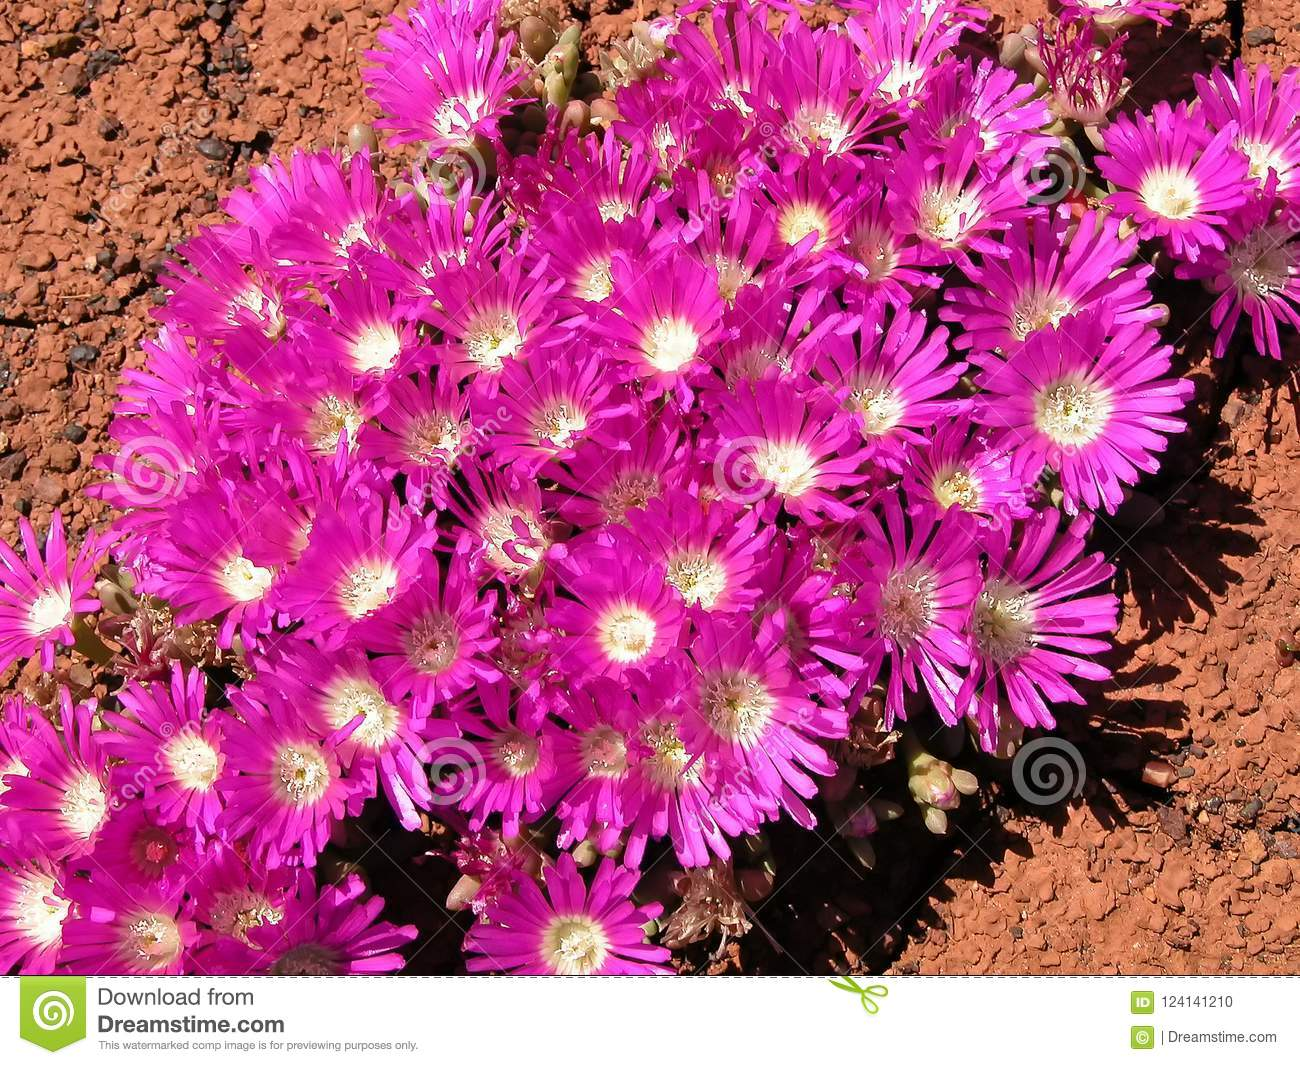 Salt lake succulents pink flowers stock photo image of lakes download salt lake succulents pink flowers stock photo image of lakes flowers 124141210 mightylinksfo